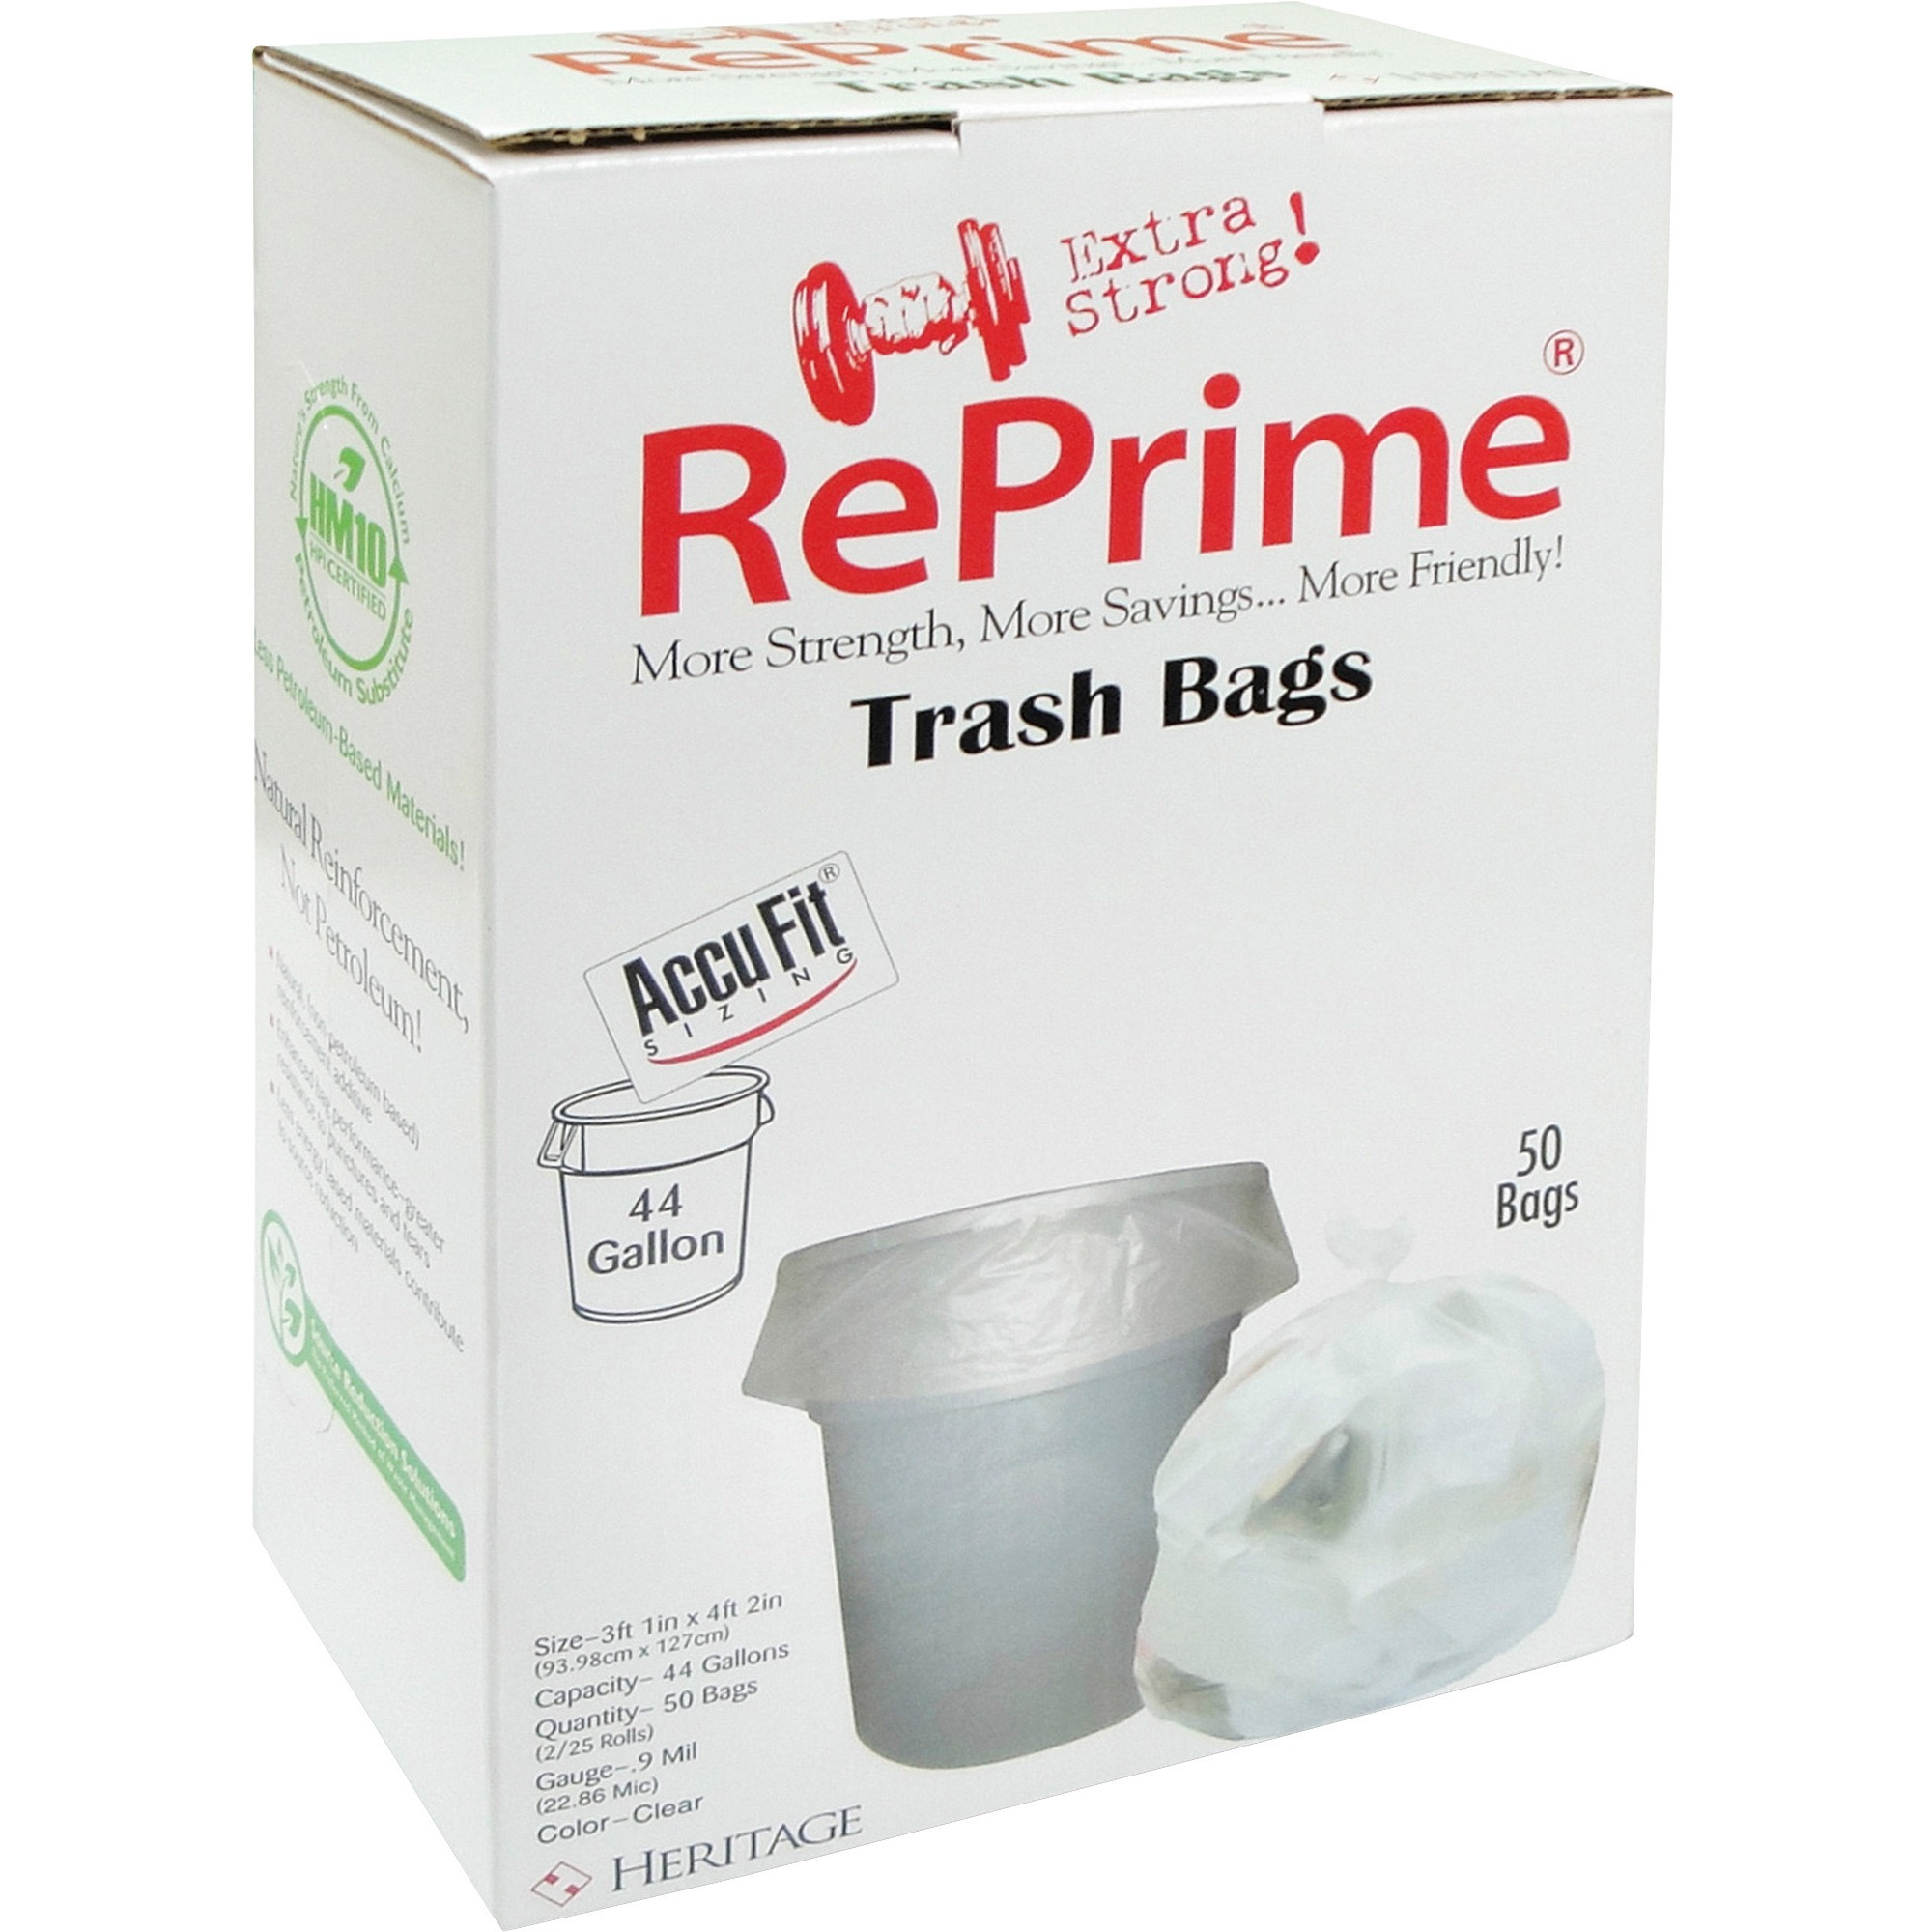 Heritage RePrime AccuFit 44-gal Can Liners, Clear, 50 / Box (Quantity)